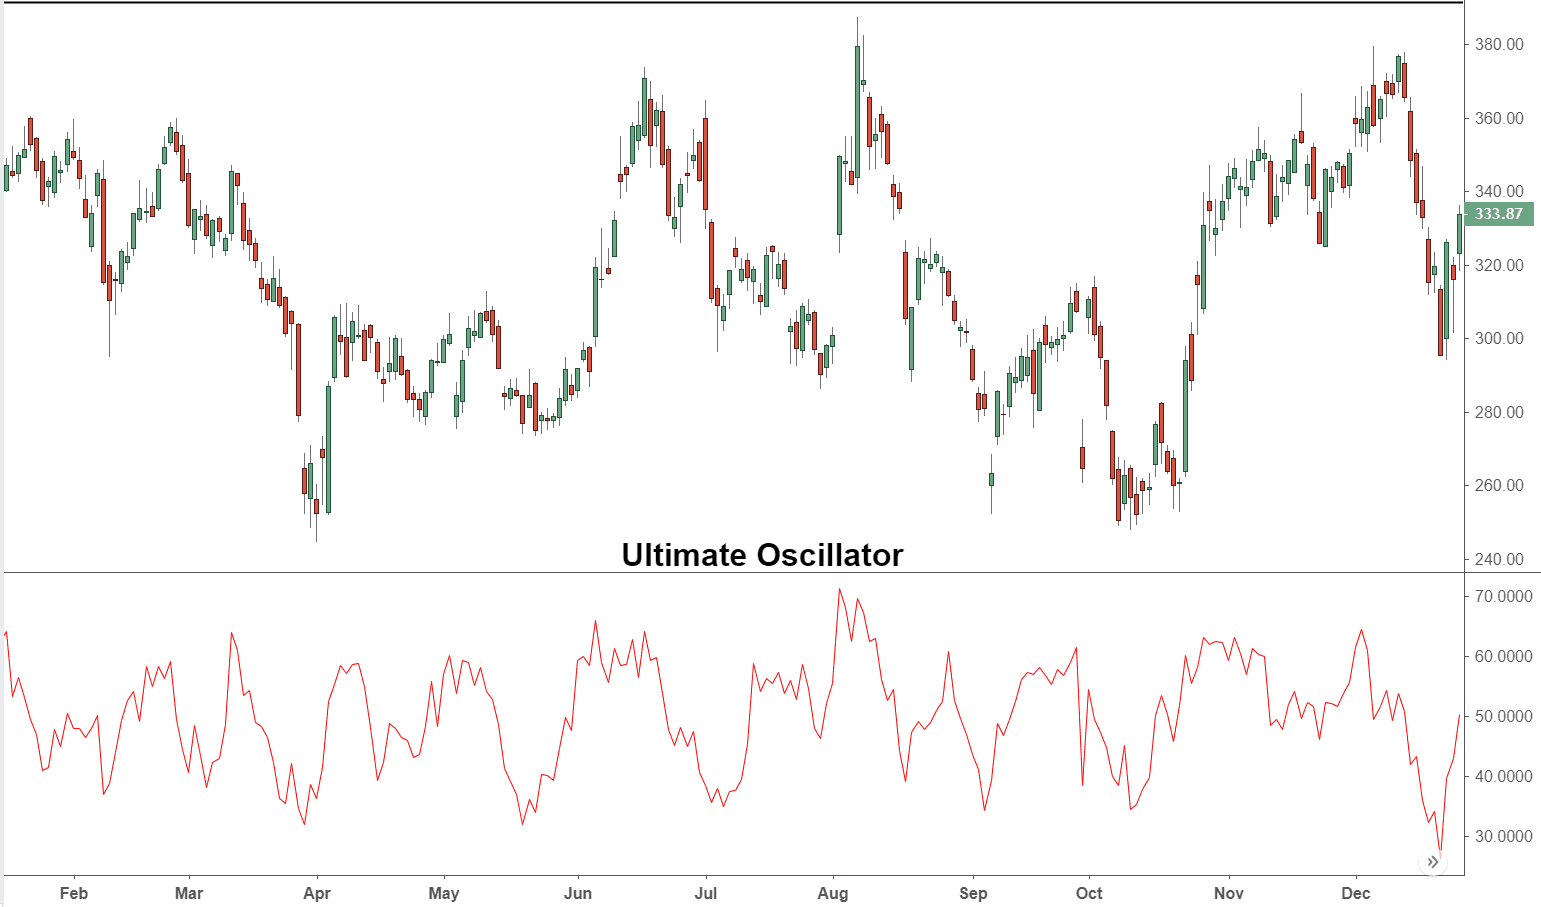 Ultimate Oscillator Definition and Strategies